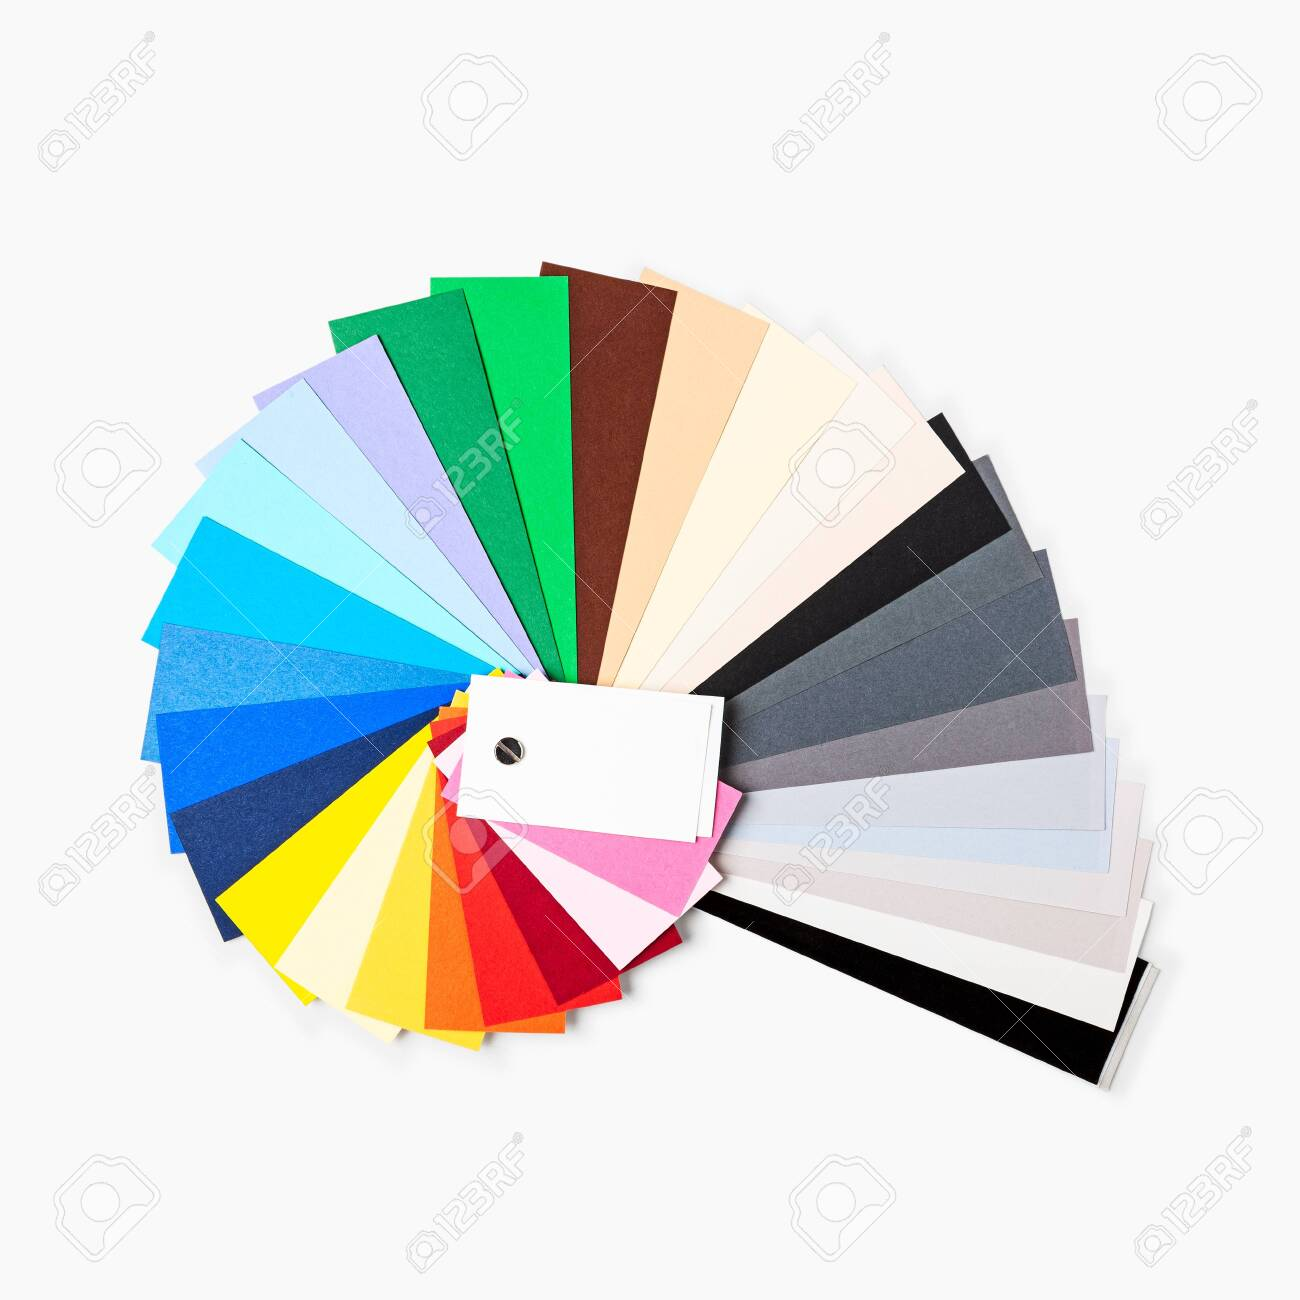 Color paper samples isolated on white background clipping path included. Photograph studio backdrop cardstock. Design element. Flat lay, top view - 141269956